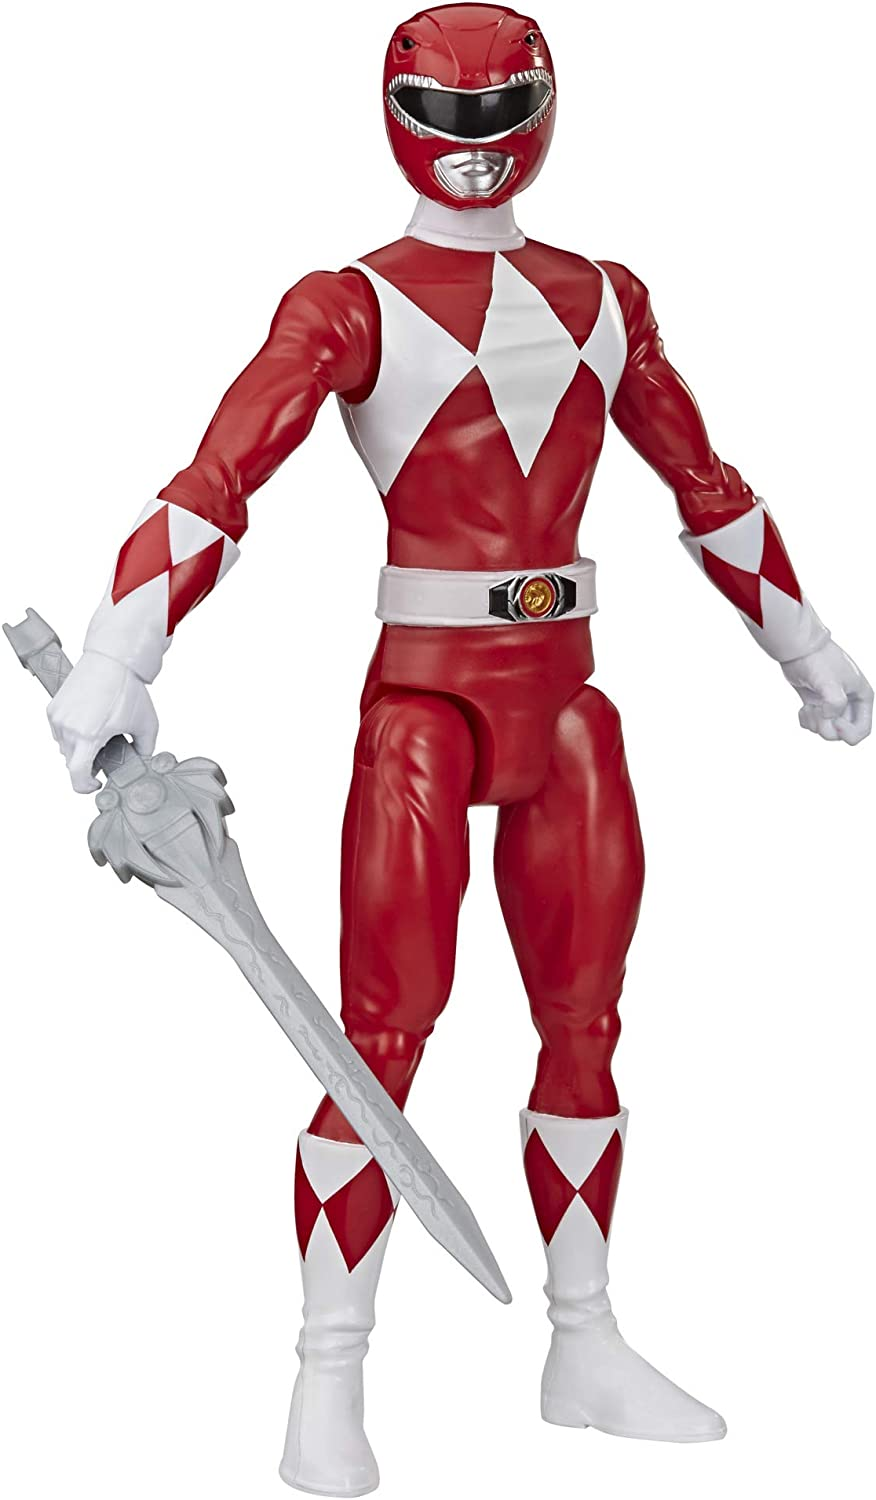 Power Rangers Mighty Morphin Red Ranger 12-Inch Action Figure Toy Inspired by Classic TV Show, with Power Sword Accessory